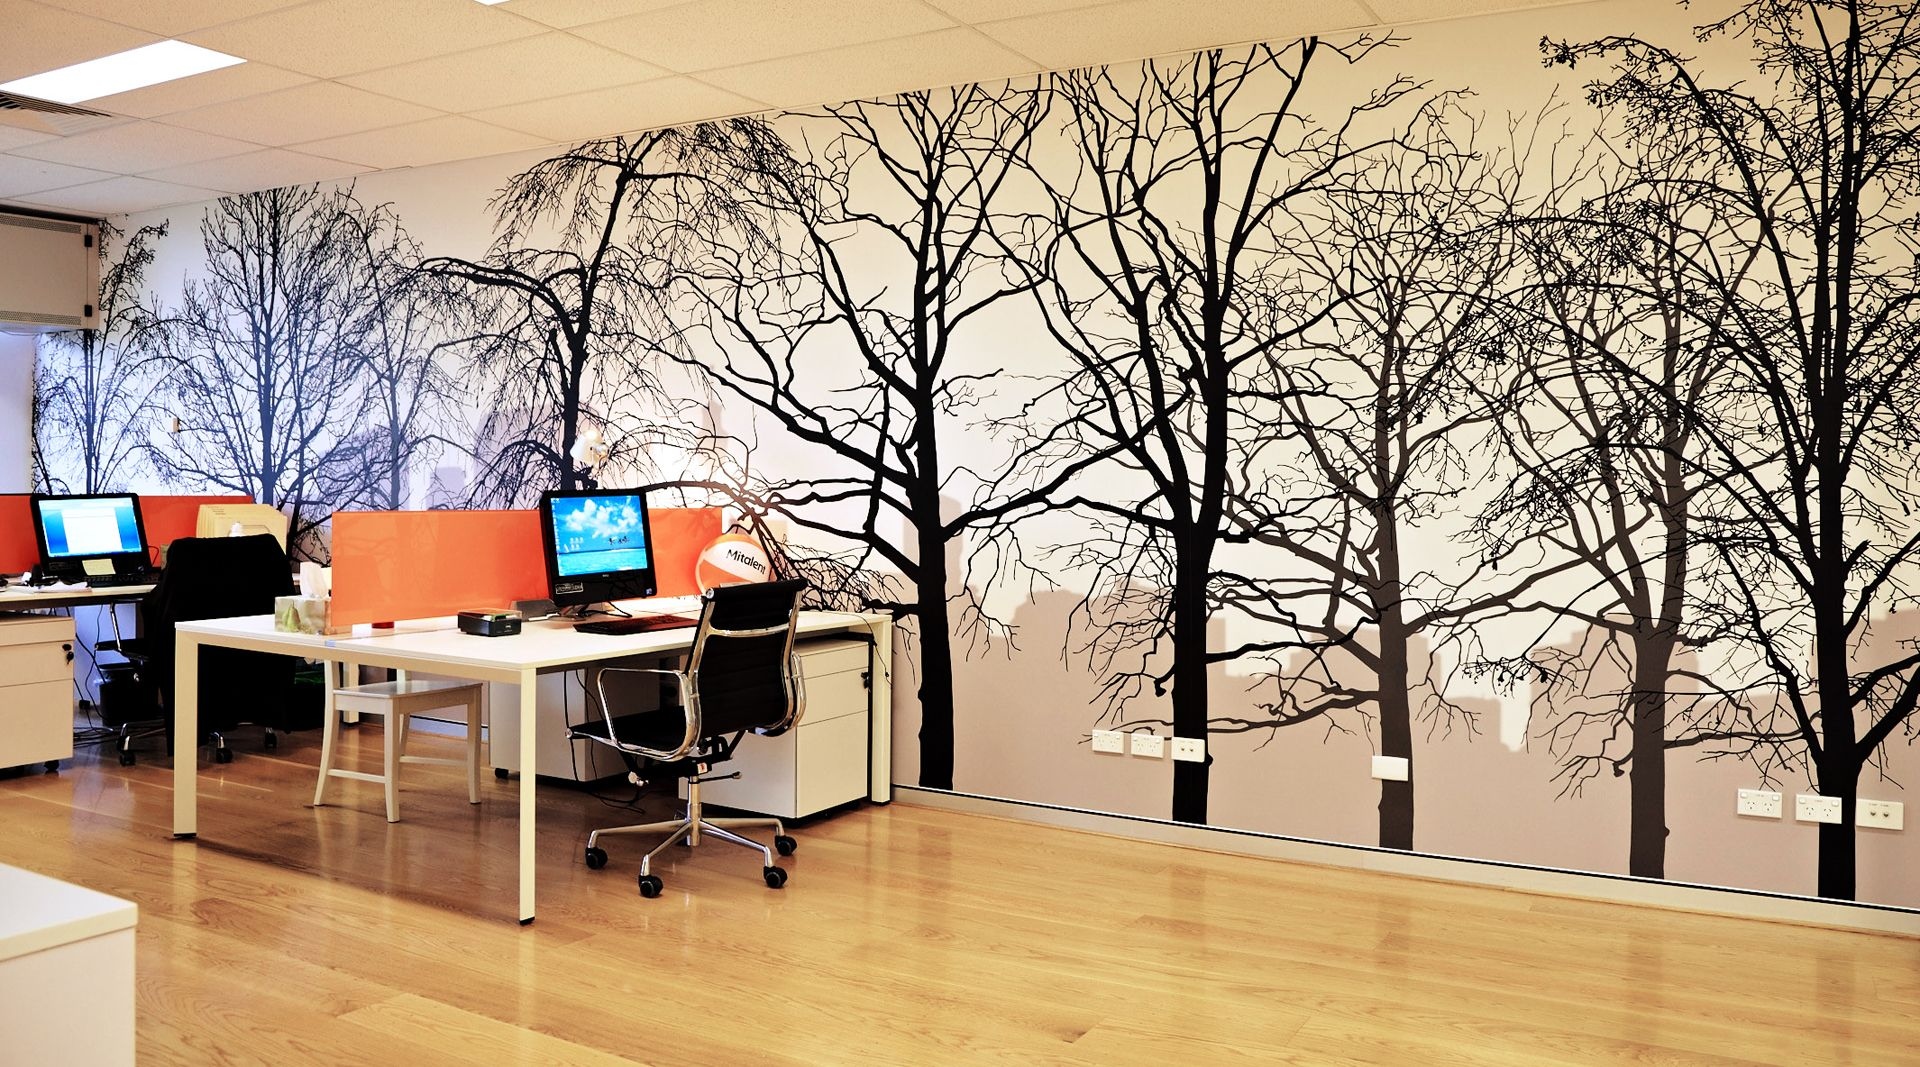 Free Download Forest Home Office 1080p Hd Wallpaper Murals Poch In